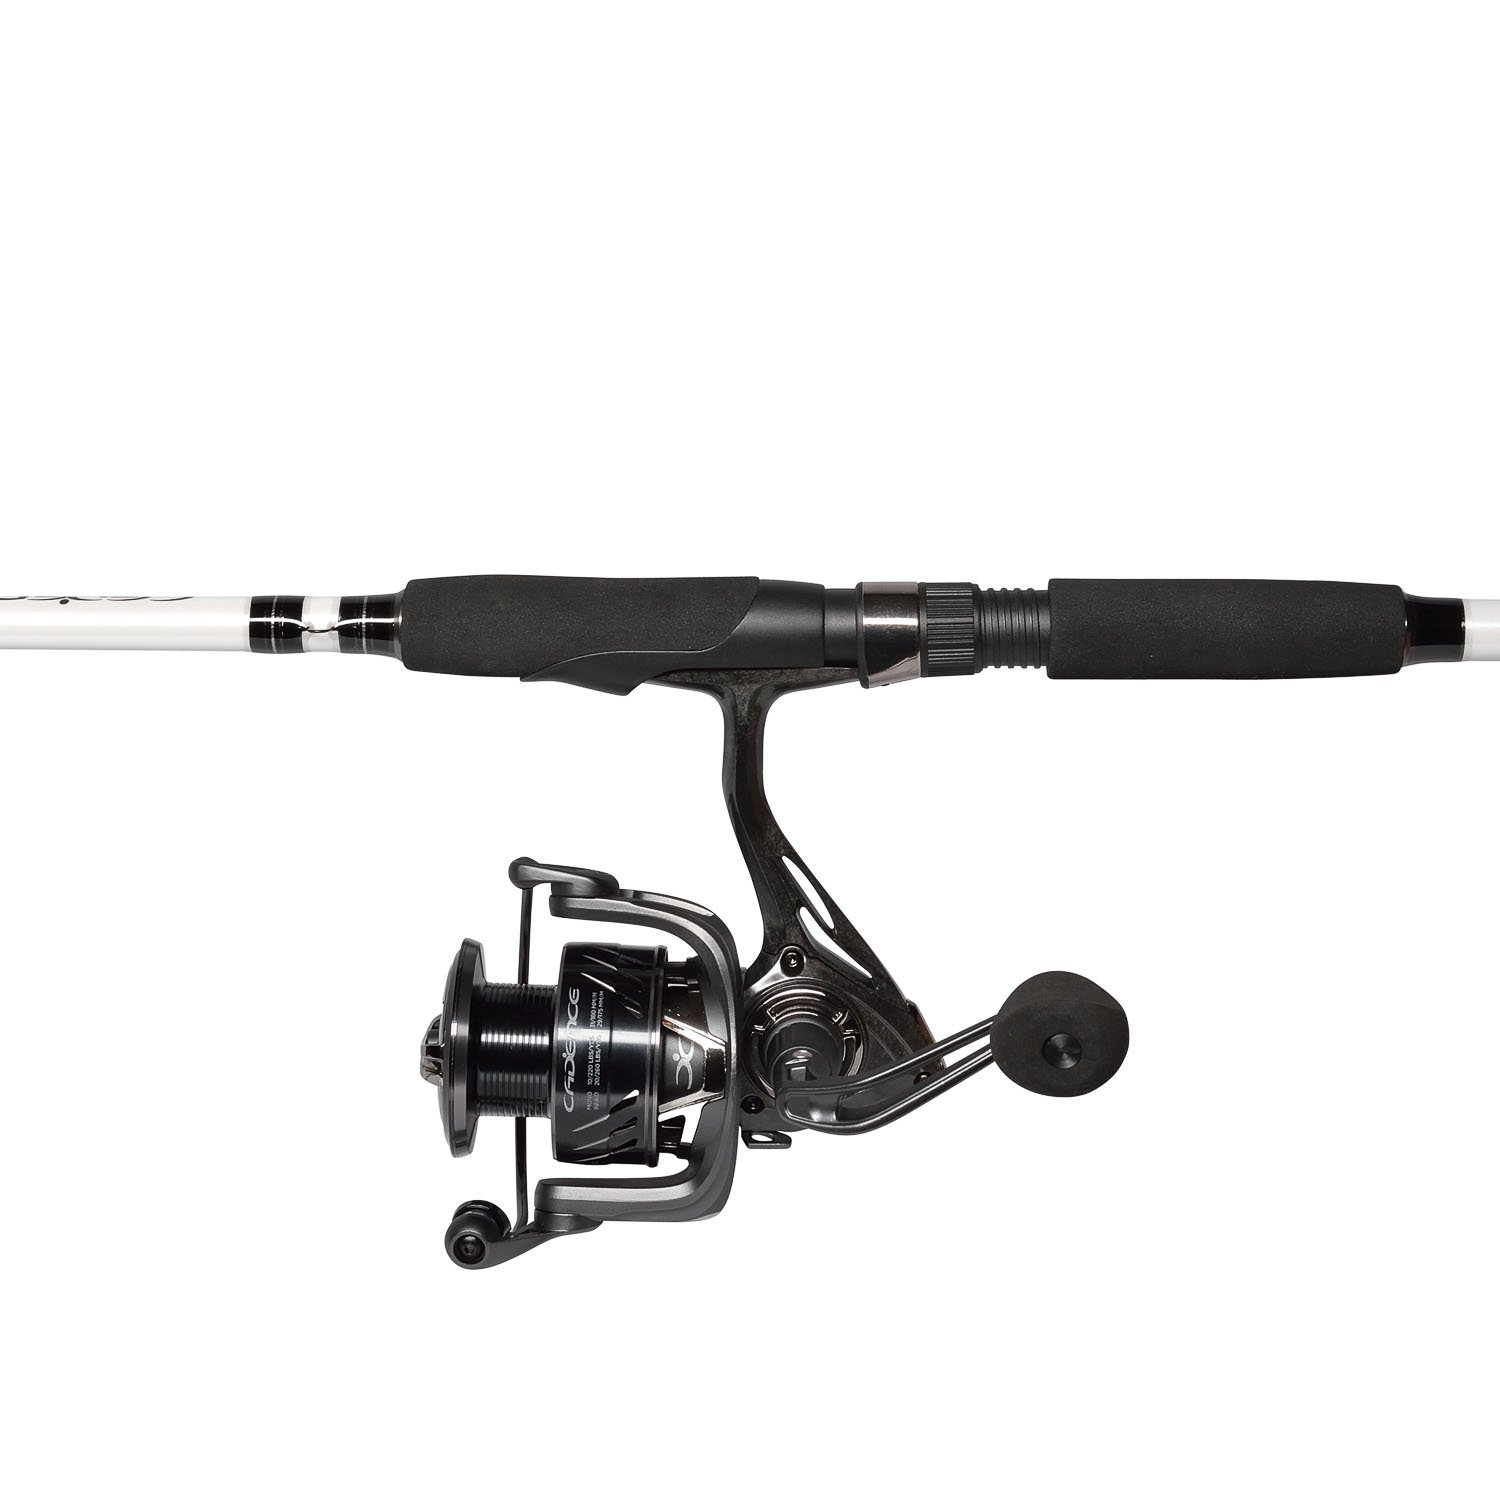 Cadence CC5 Spinning Combo Lightweight with 24-Ton Graphite 2-Piece Graphite Rod Carbon Fiber Drag System Smooth Strong Carbon Composite Frame Side Plates Reel Rod Combo